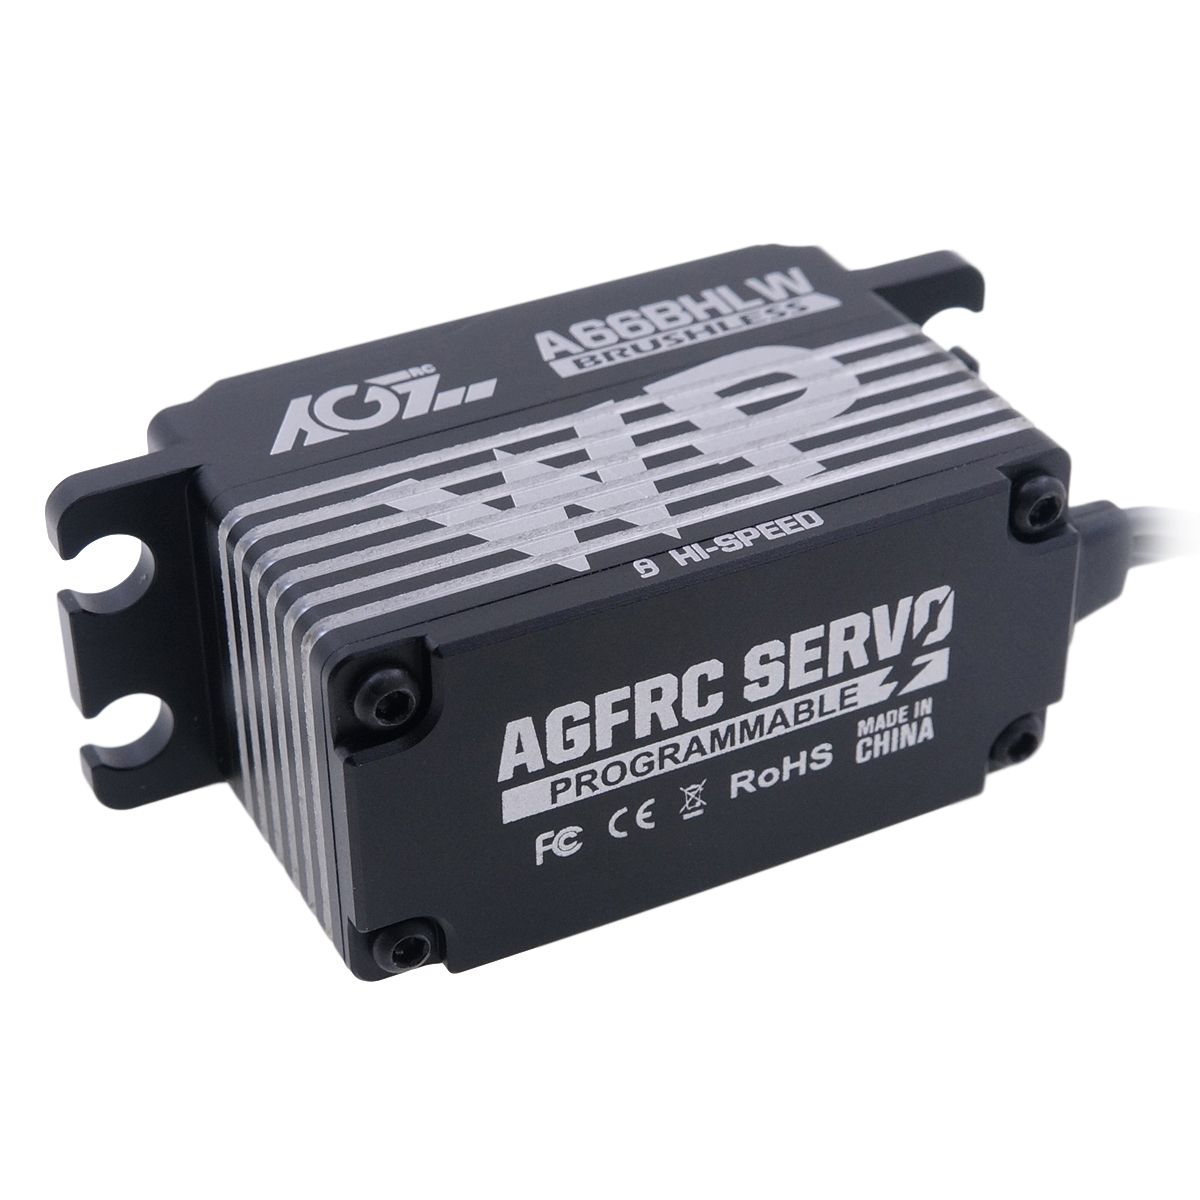 AGFrc Brand New 0.09Sec 25KG Super Torque Low Profile Programmable Waterproof Digital Brushless Servo A66BHLW